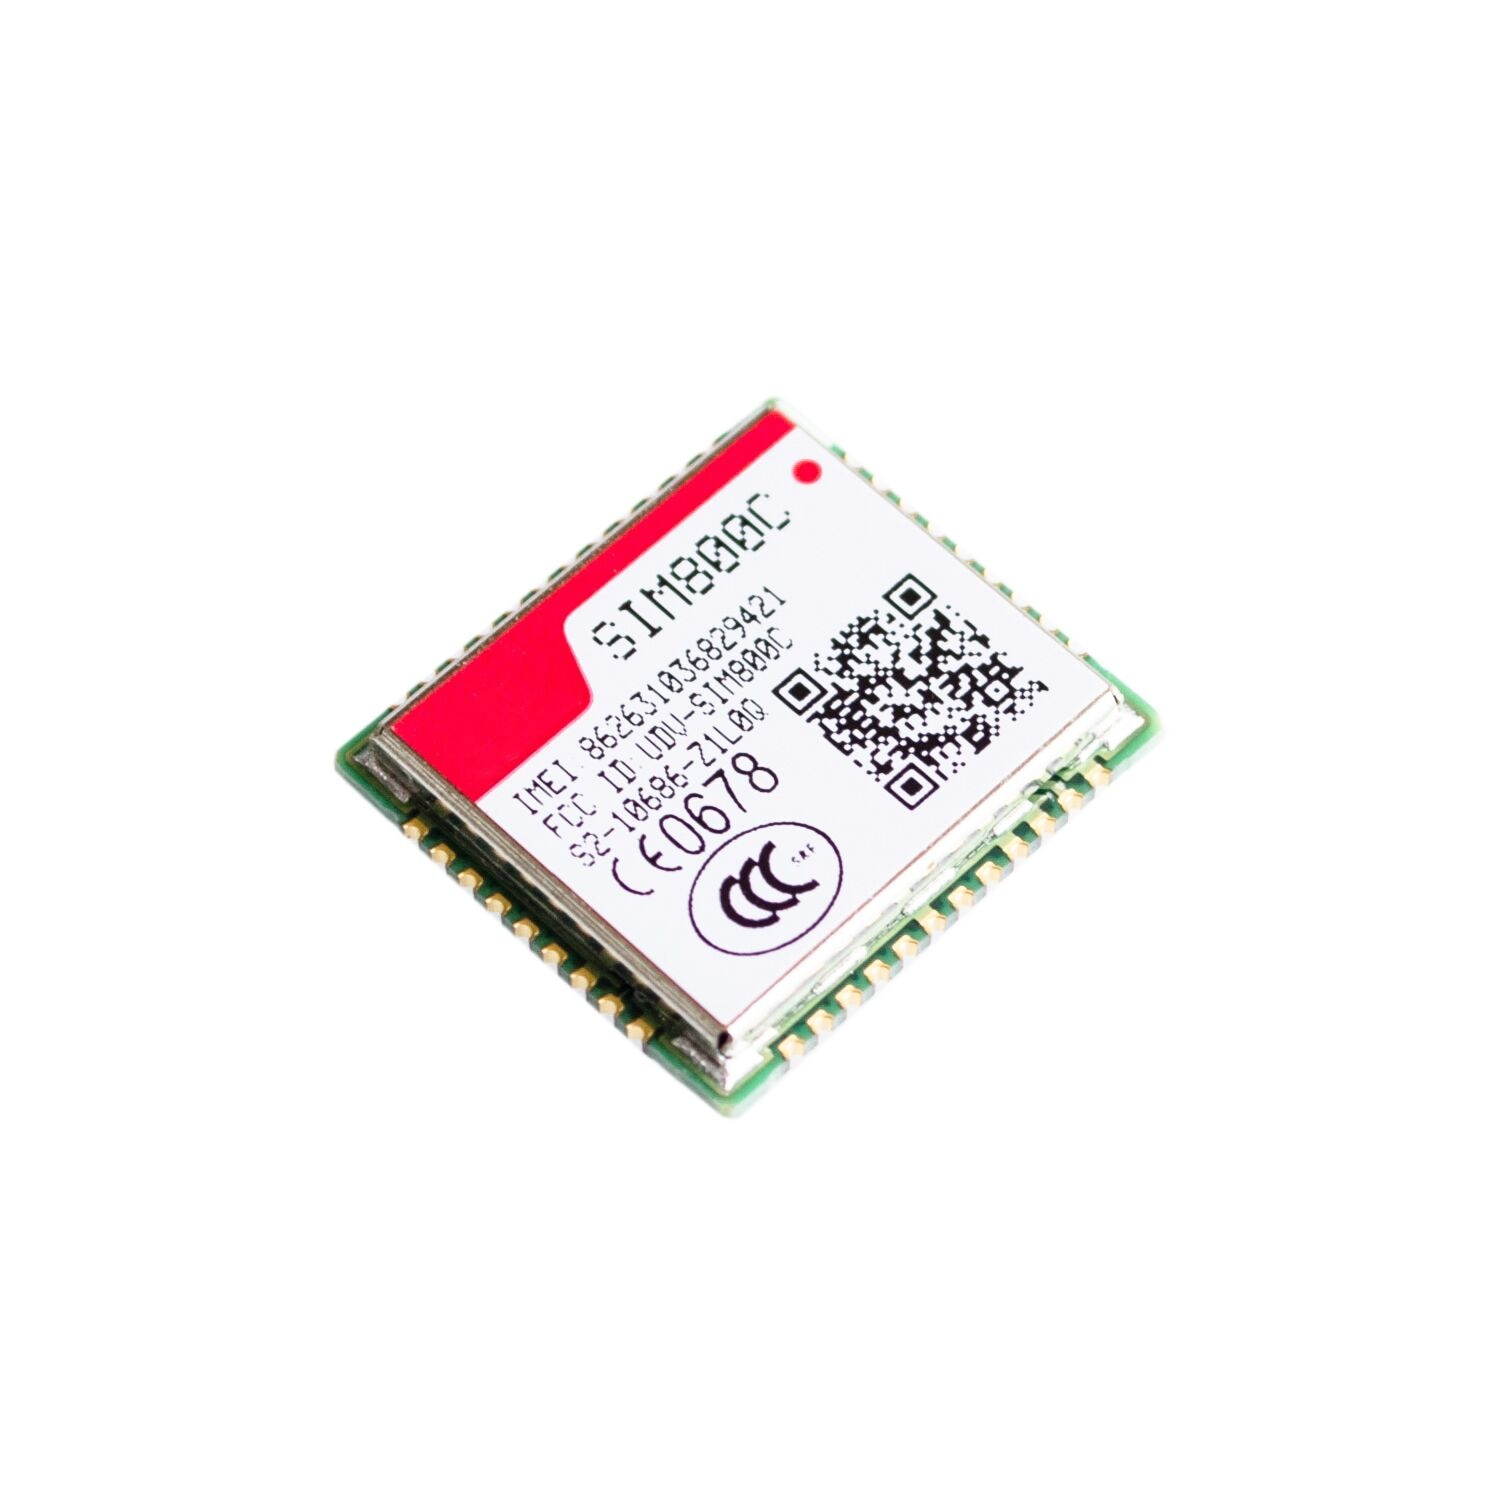 Фото - SIM800C/900/5320E/868/ SIMCOM GSM/GPRS With small size in LCC interface and play high performance small beginnings say and play